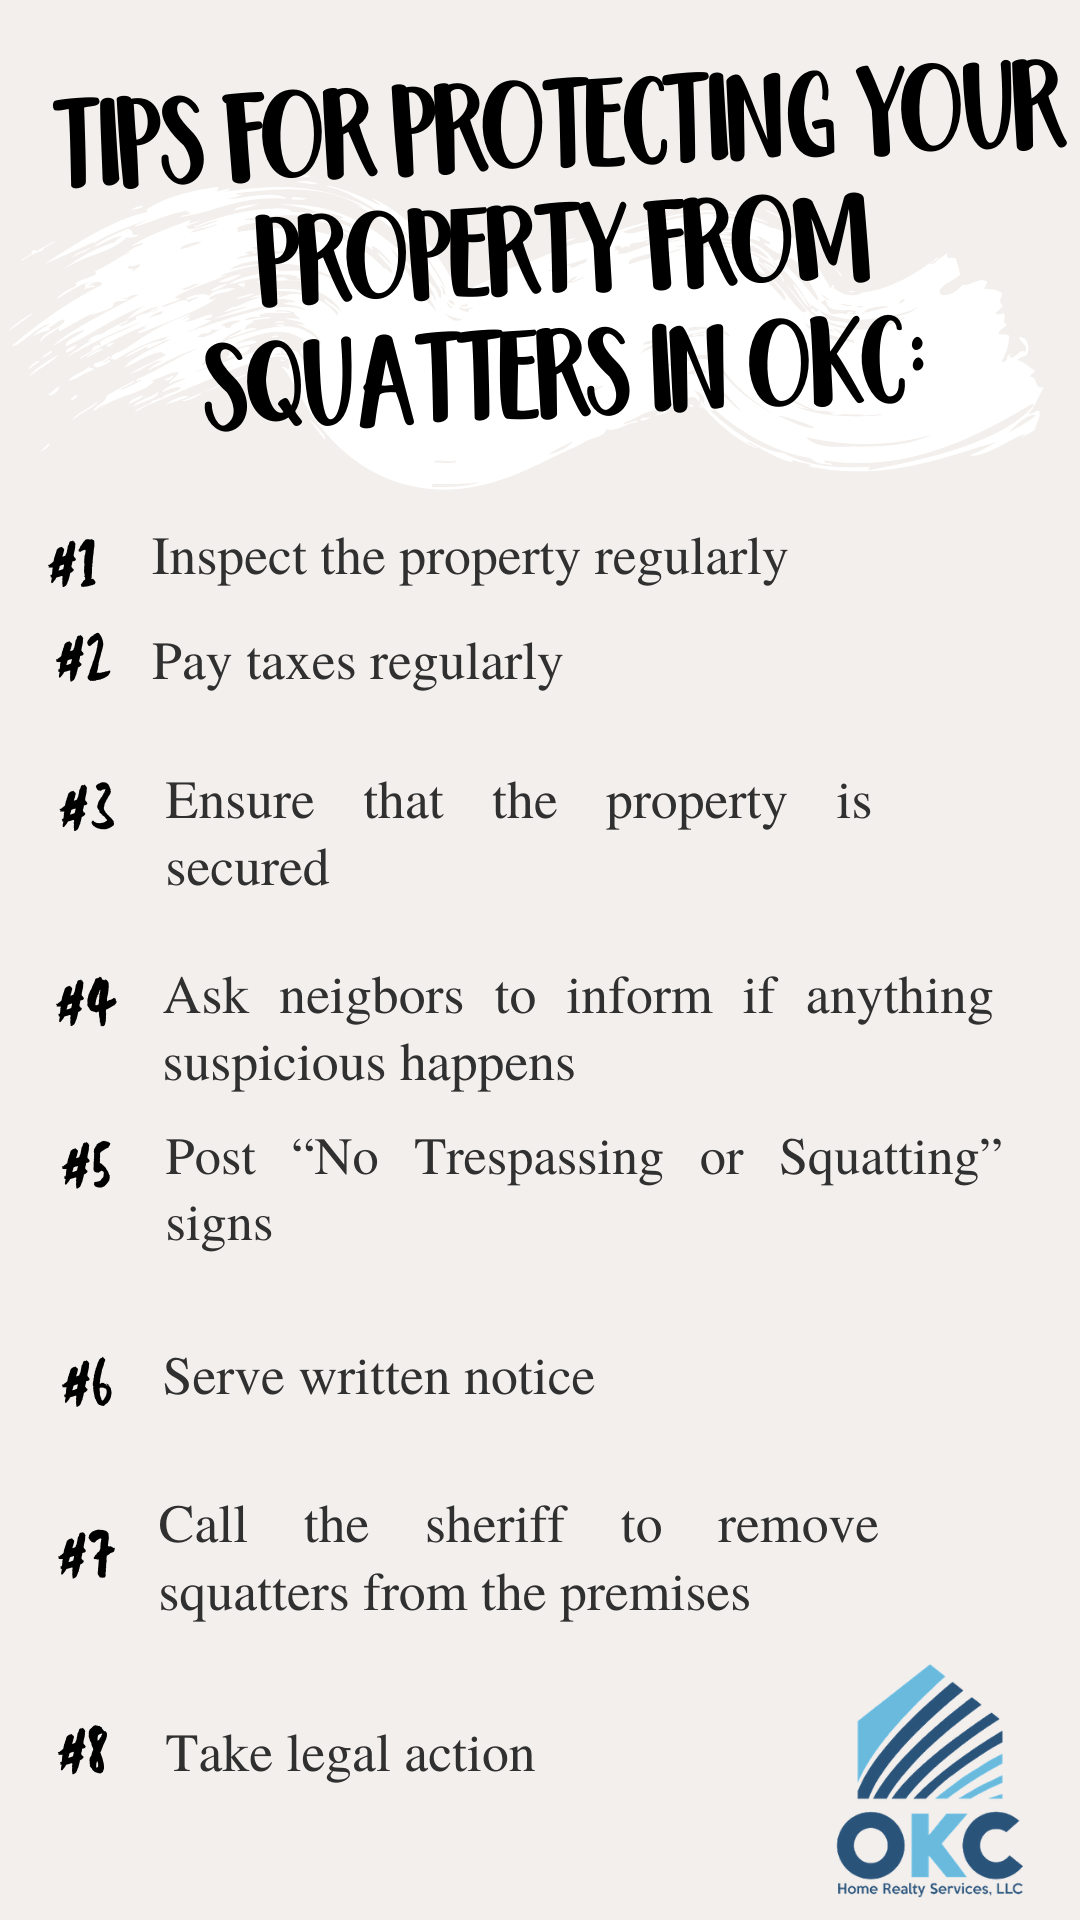 Tips for protecting your property from squatters in OKC